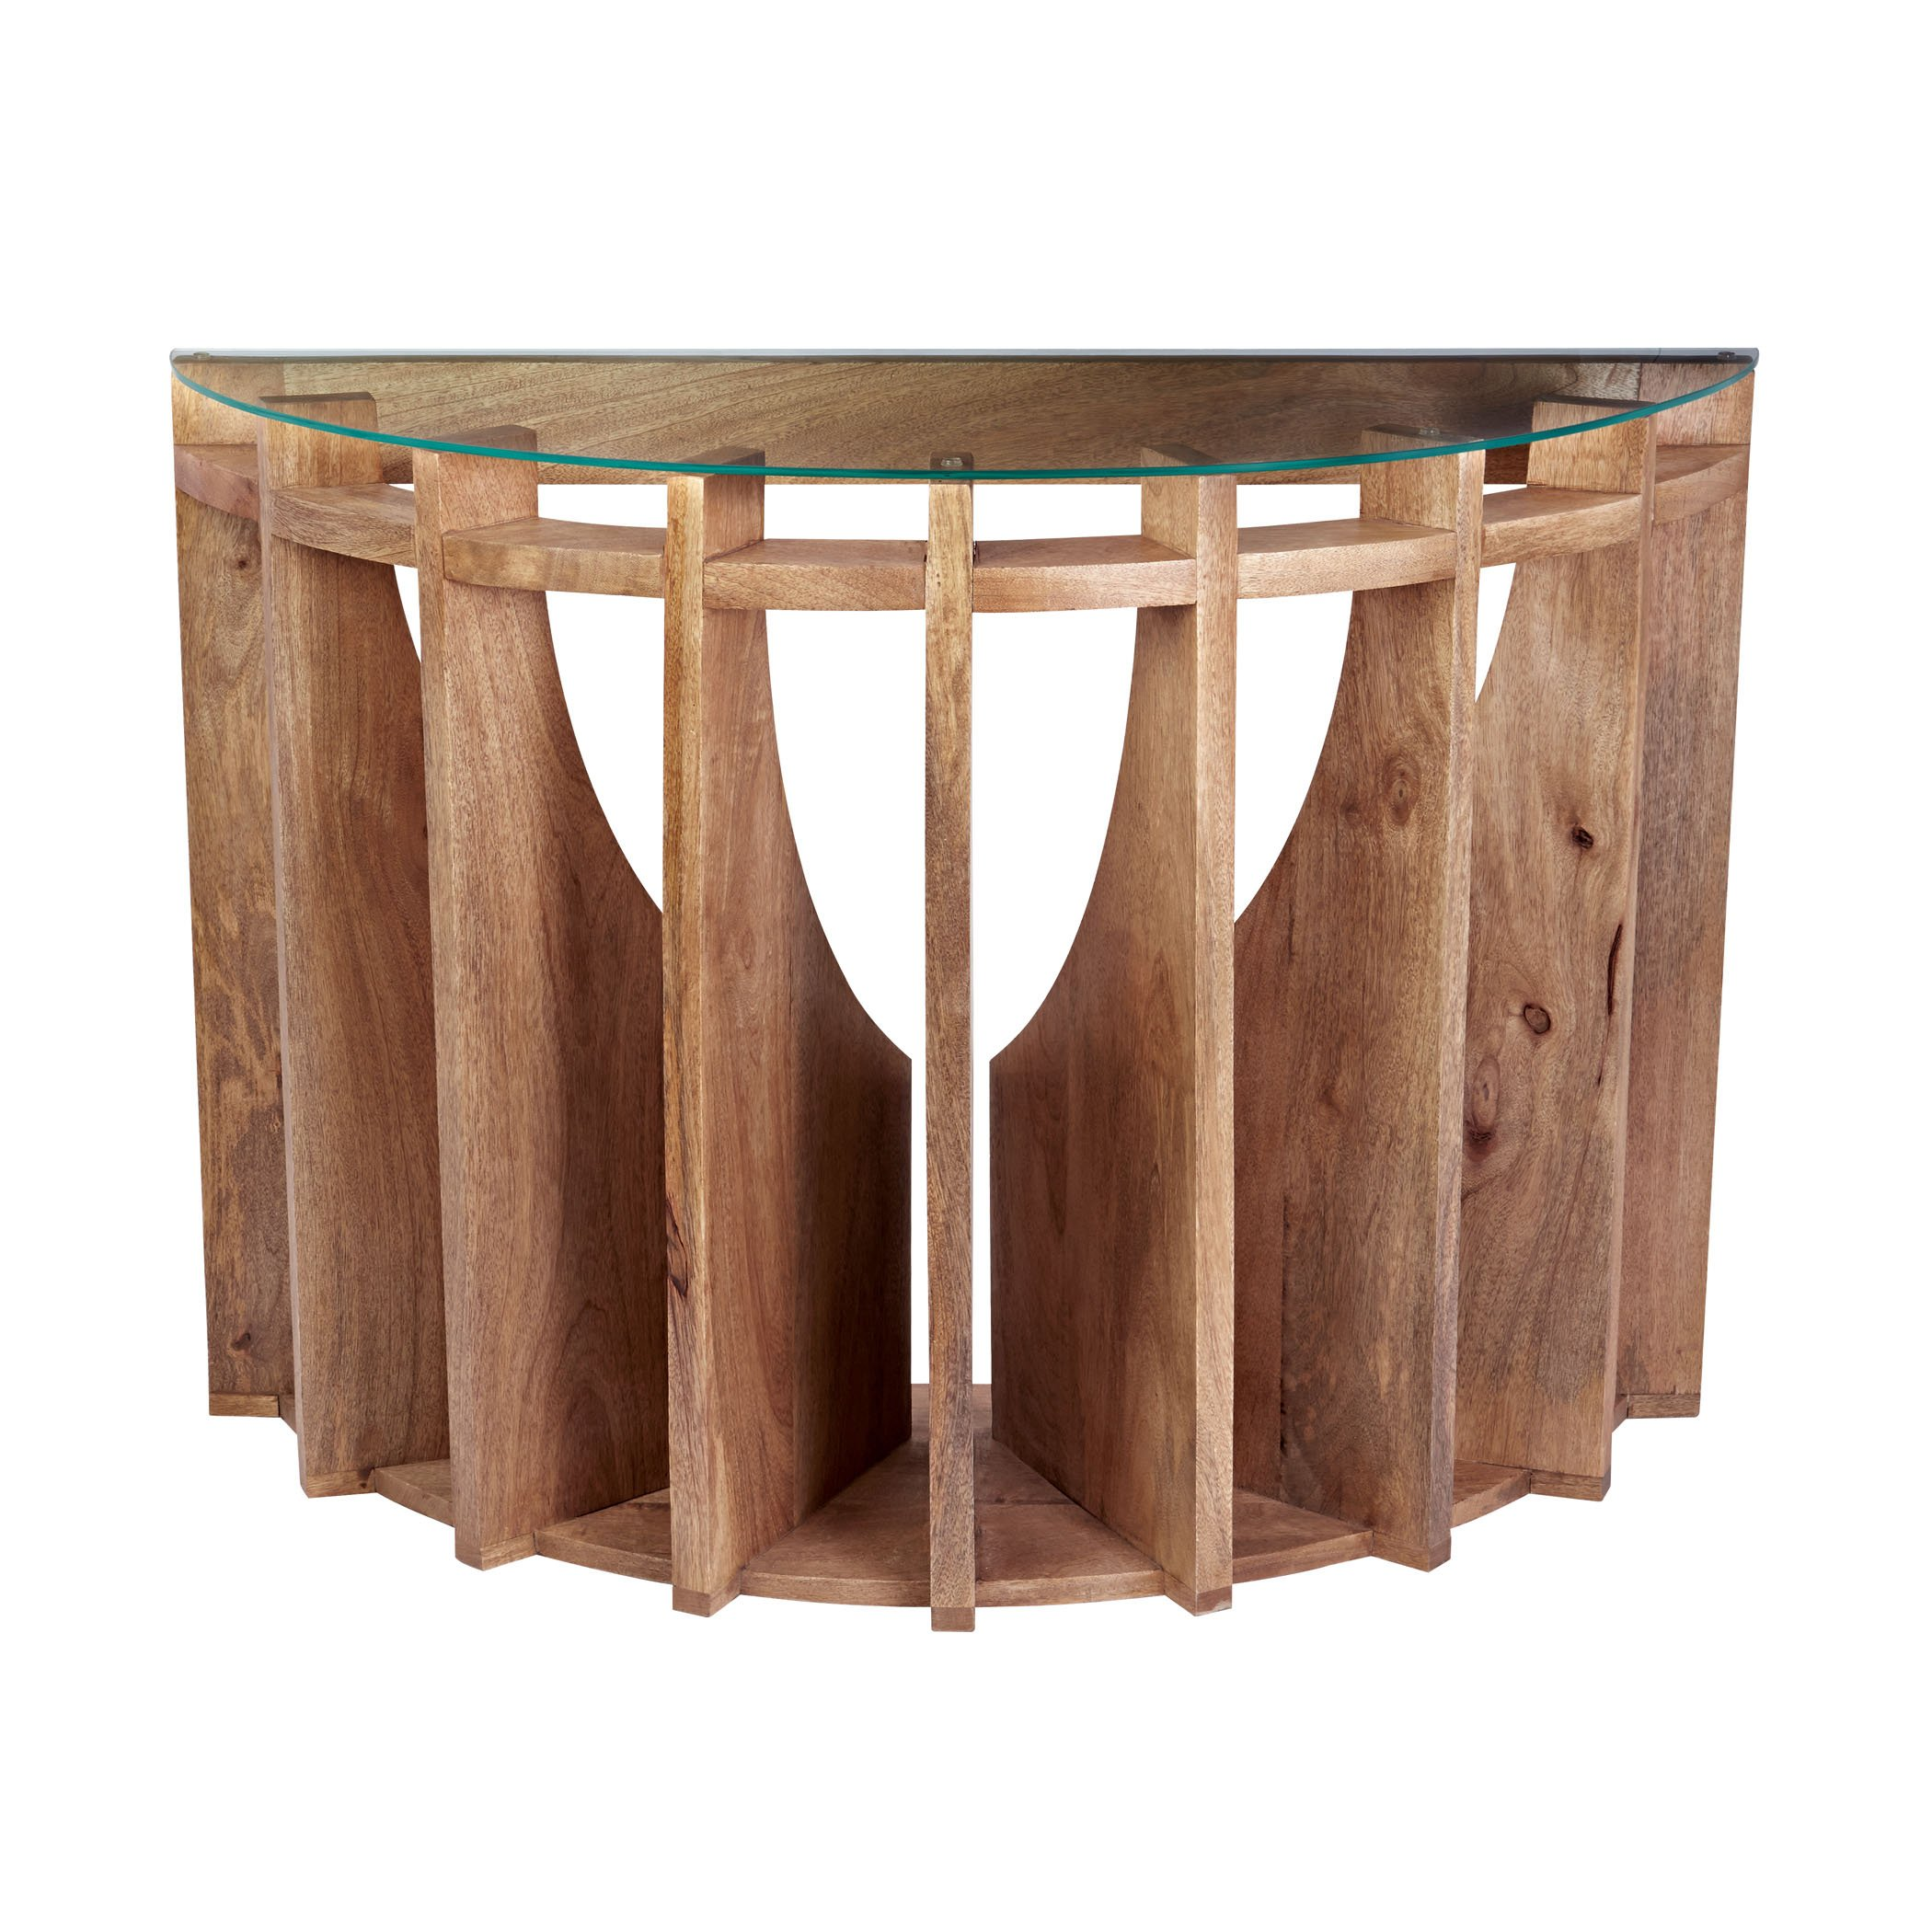 Dimond Home 985-039 Wooden Sundial Console Table, 42'' x 16'' x 30''